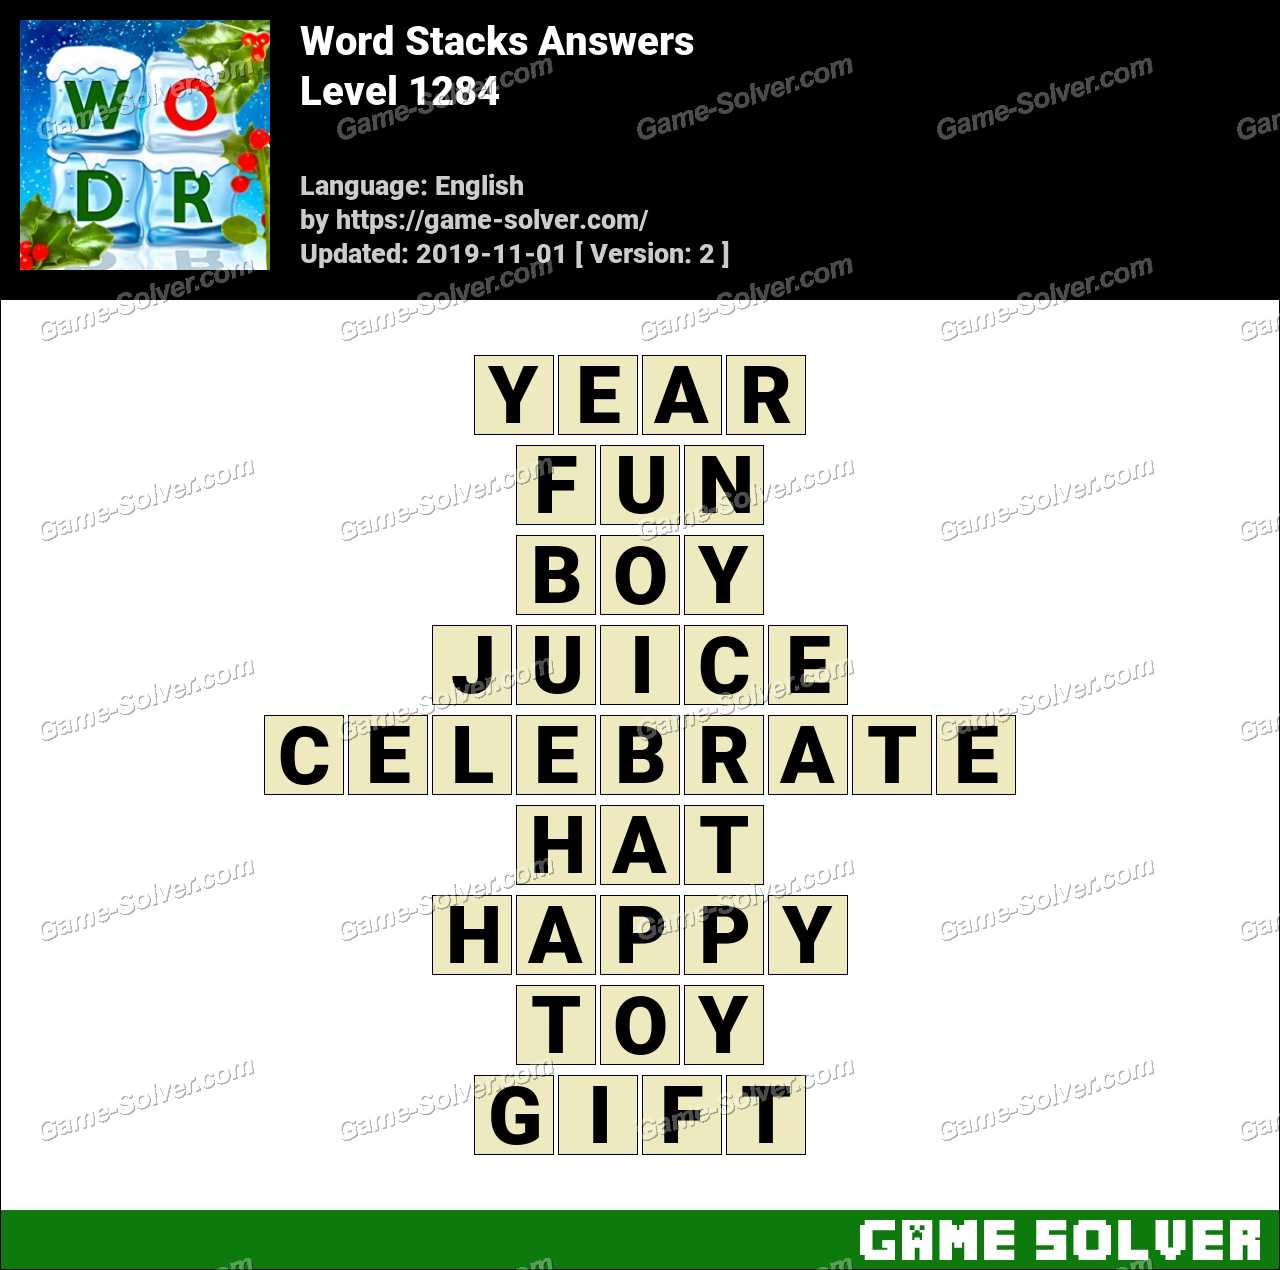 Word Stacks Level 1284 Answers